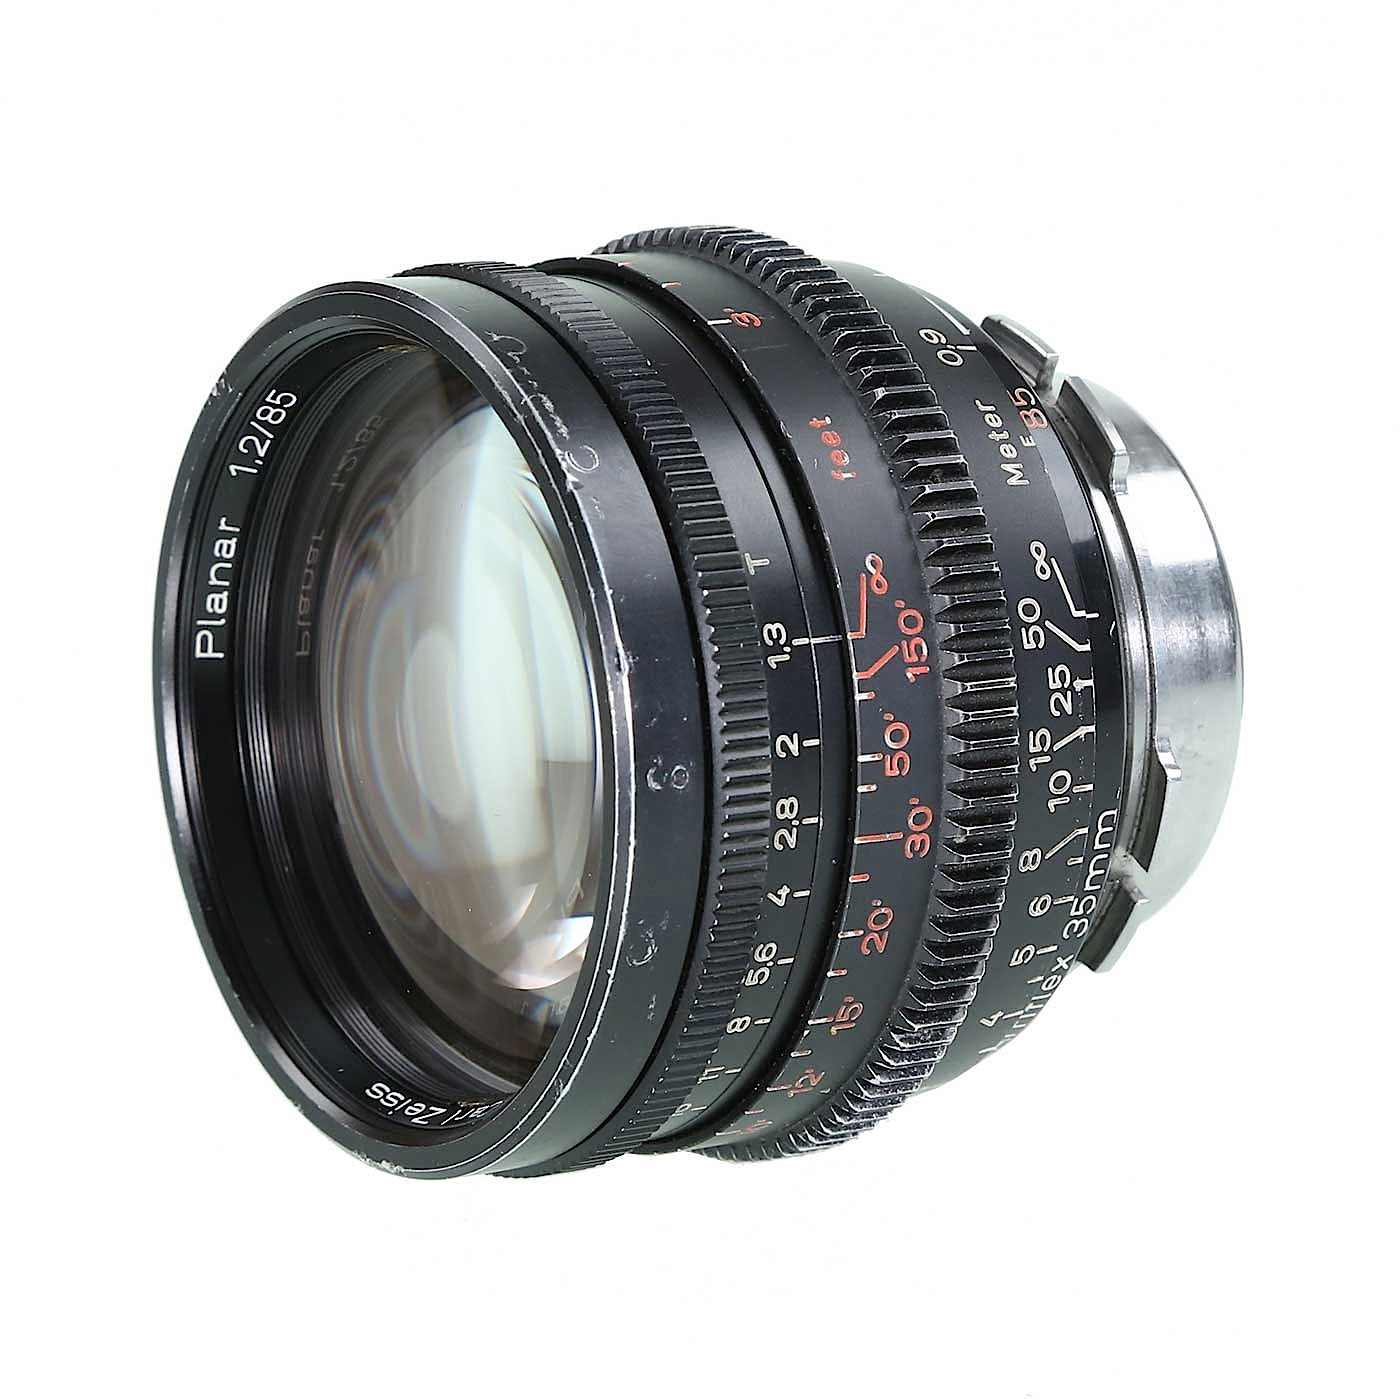 Zeiss 85mm T1.3 (Superspeed) Prime Lens